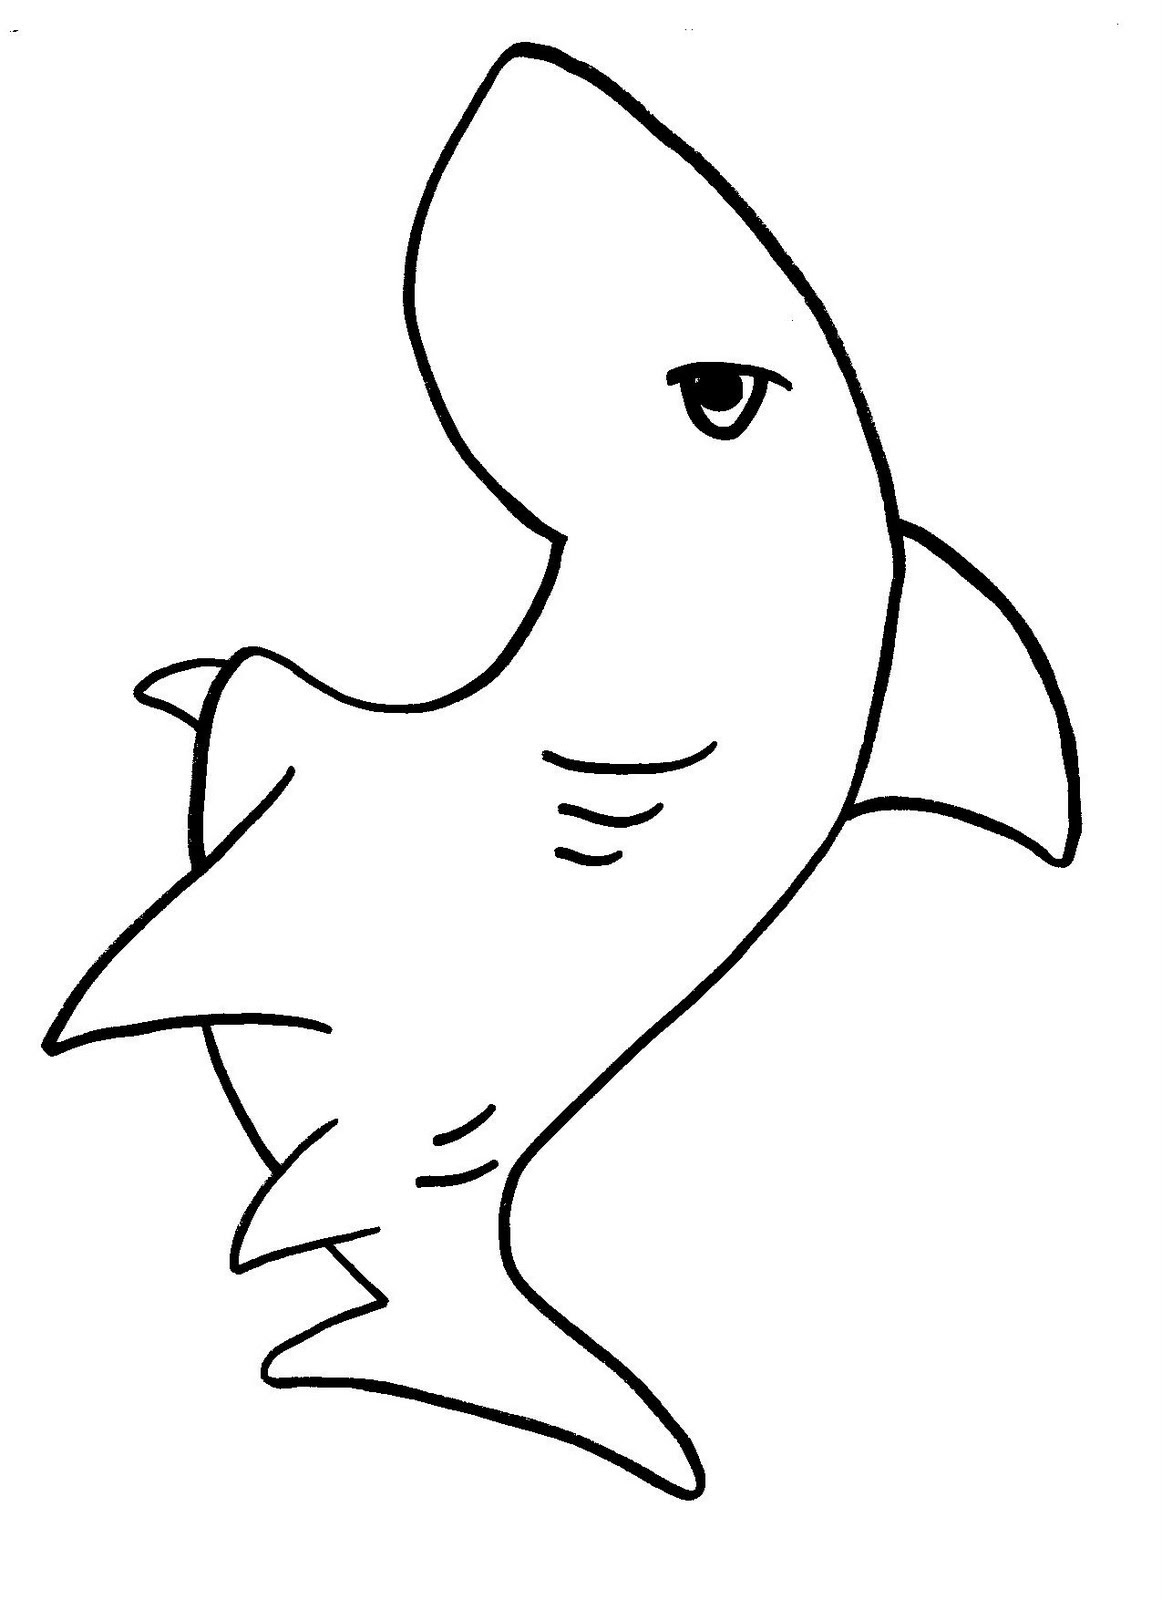 Shark Coloring Pages   Clipart Panda - Free Clipart Images